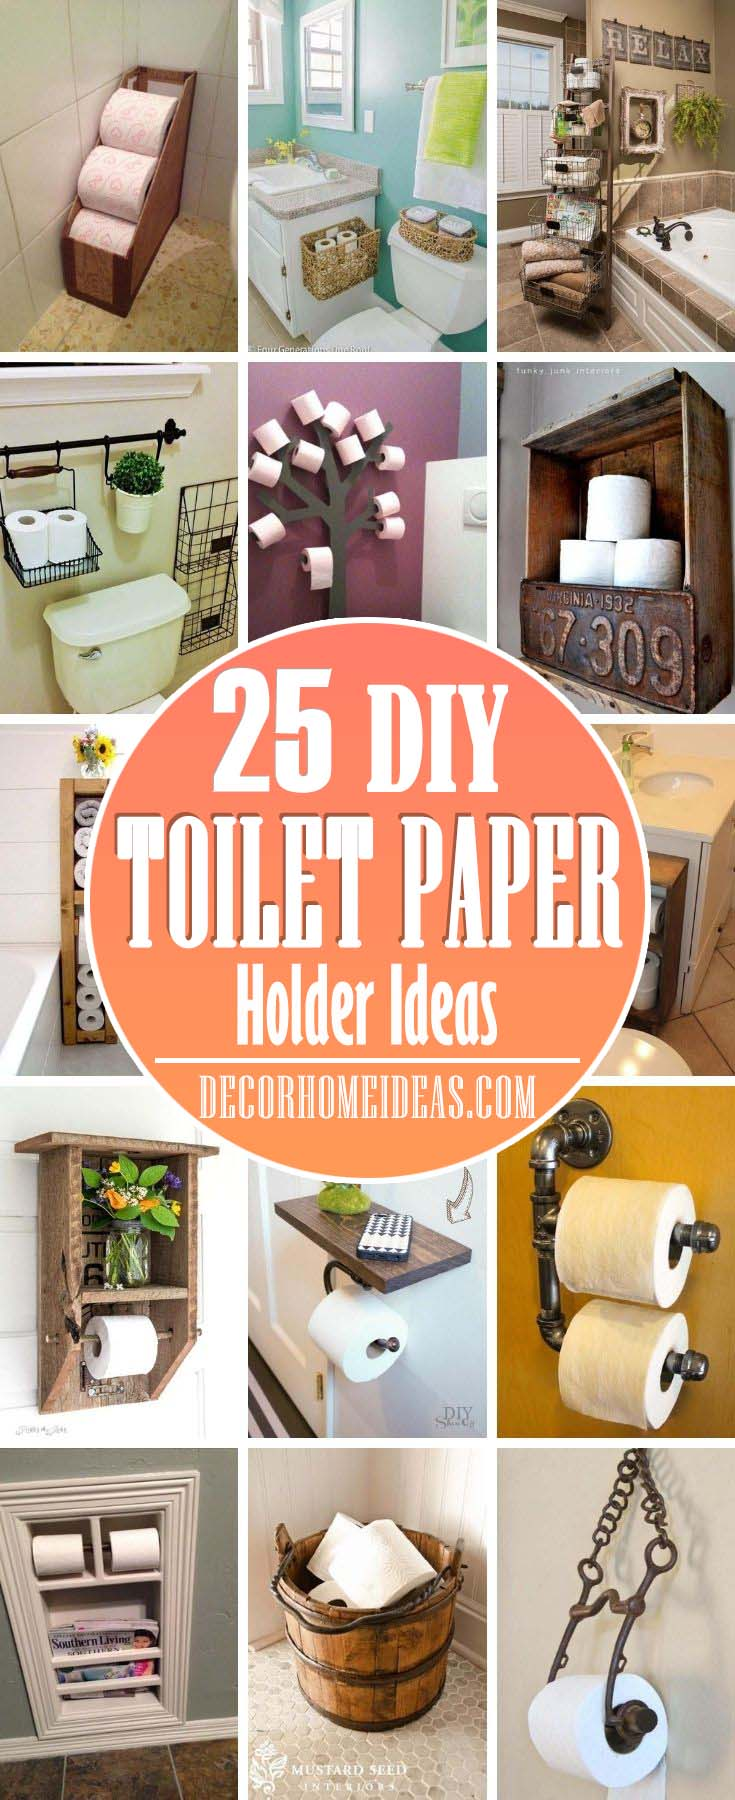 Whether you're looking for something ordinary that keeps some extra rolls on hand and is out of sight, something that provides additional storage for other bathroom accessories, or a fashionable piece, there are plenty of toilet paper holders that will fit your style. #decorhomeideas